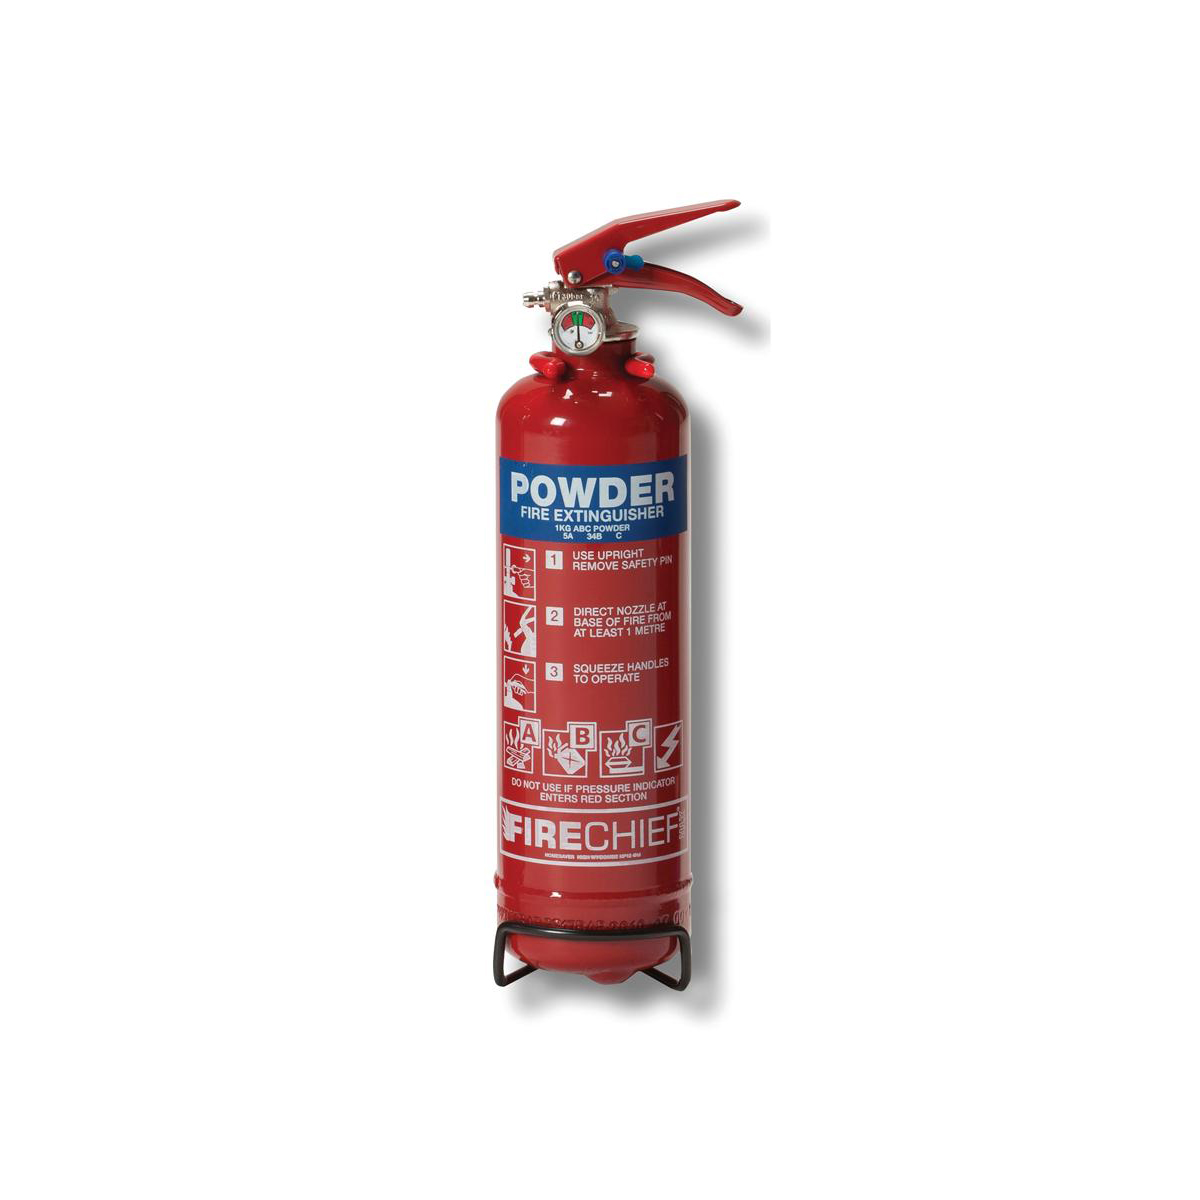 Fire extinguishers IVG 1.0KG Powder Fire Extinguisherfor Class A B and C Fires Ref WG10116